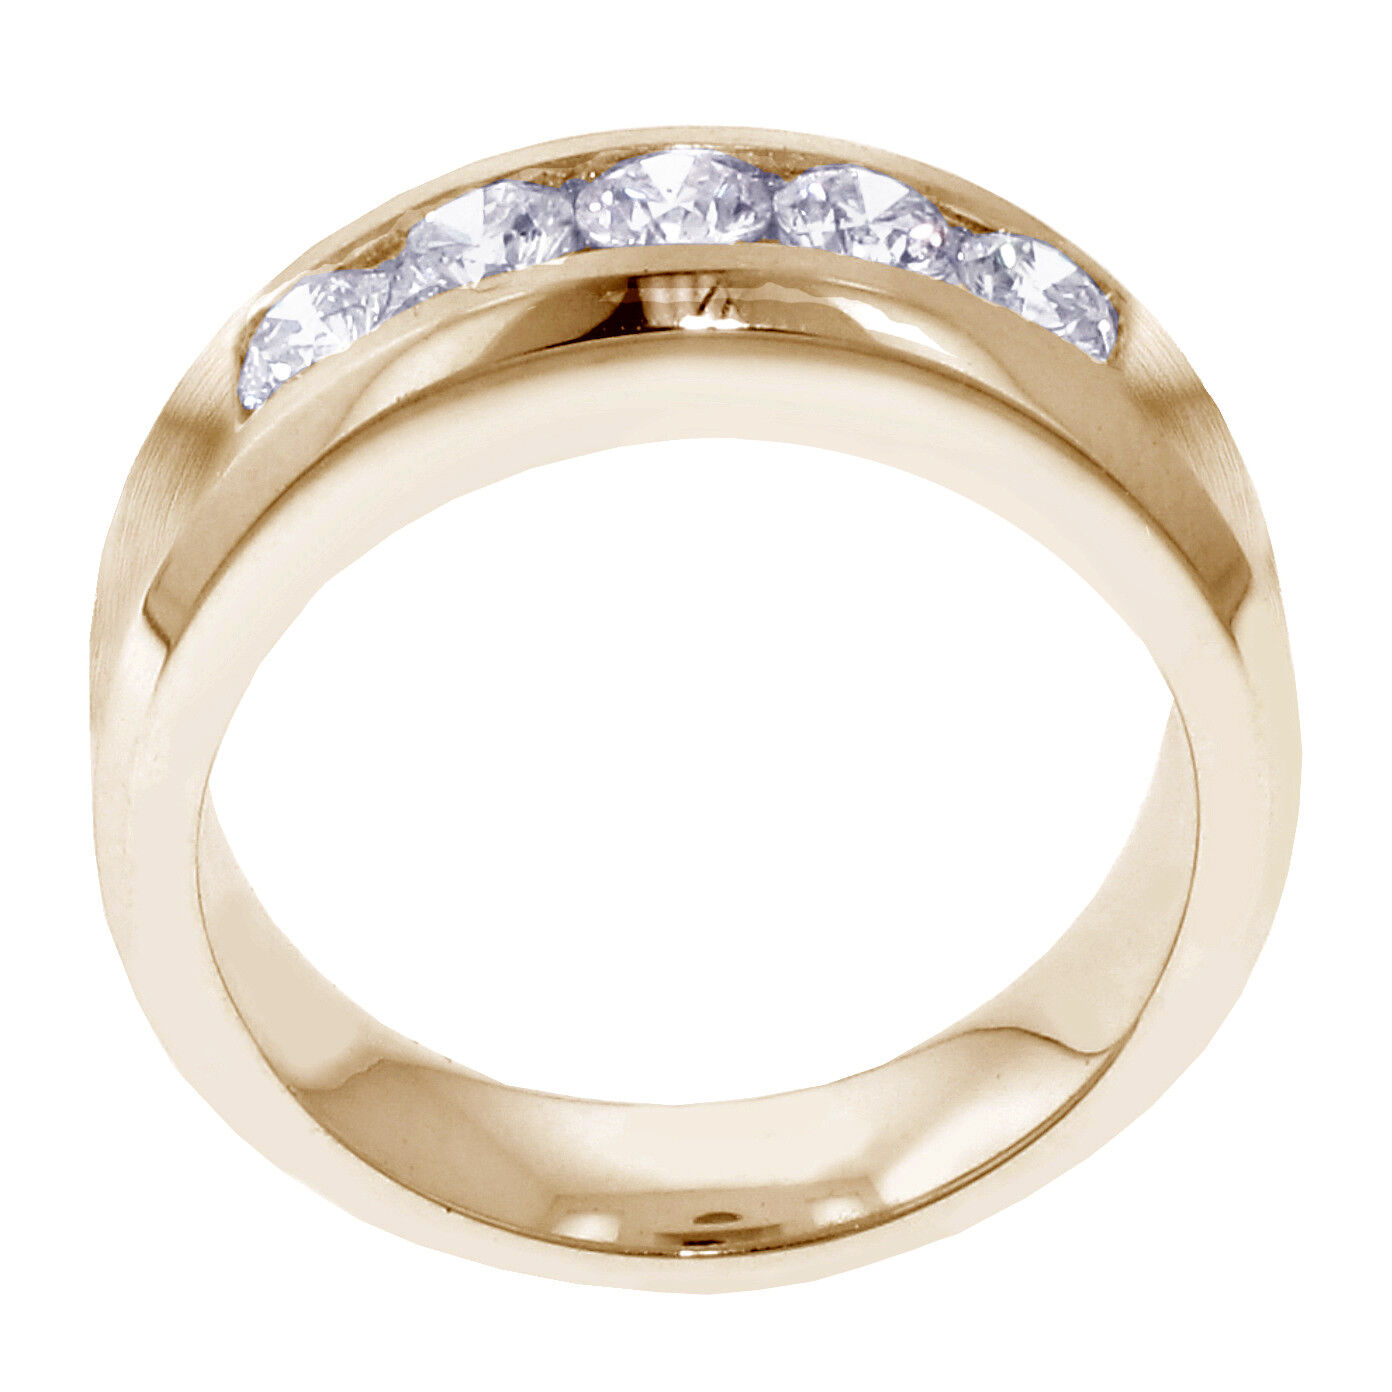 1.00 CT Channel Set Diamond Mens Wedding Ring in 14k Yellow Gold NEW! 6